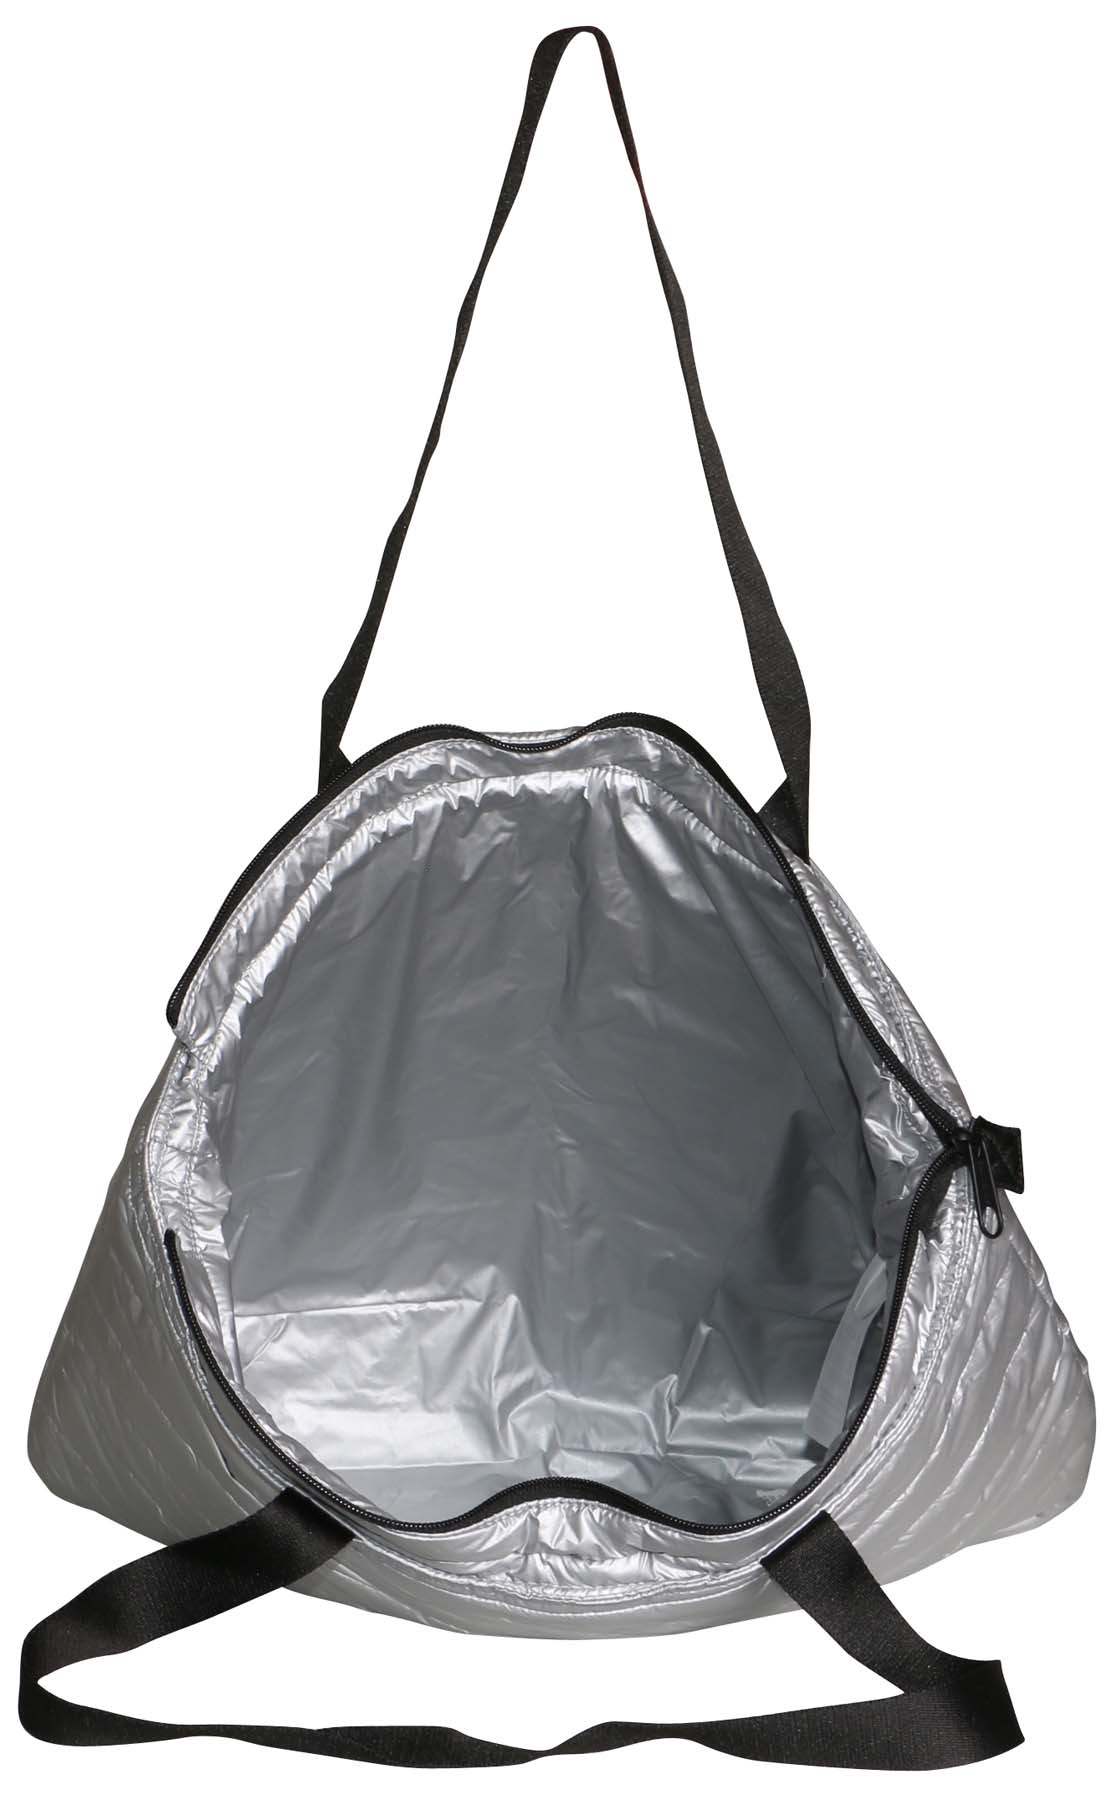 4249f2a4c6 Converse - Converse Packable Carry All Tote Bag-Metallic Silver-One Size -  Walmart.com